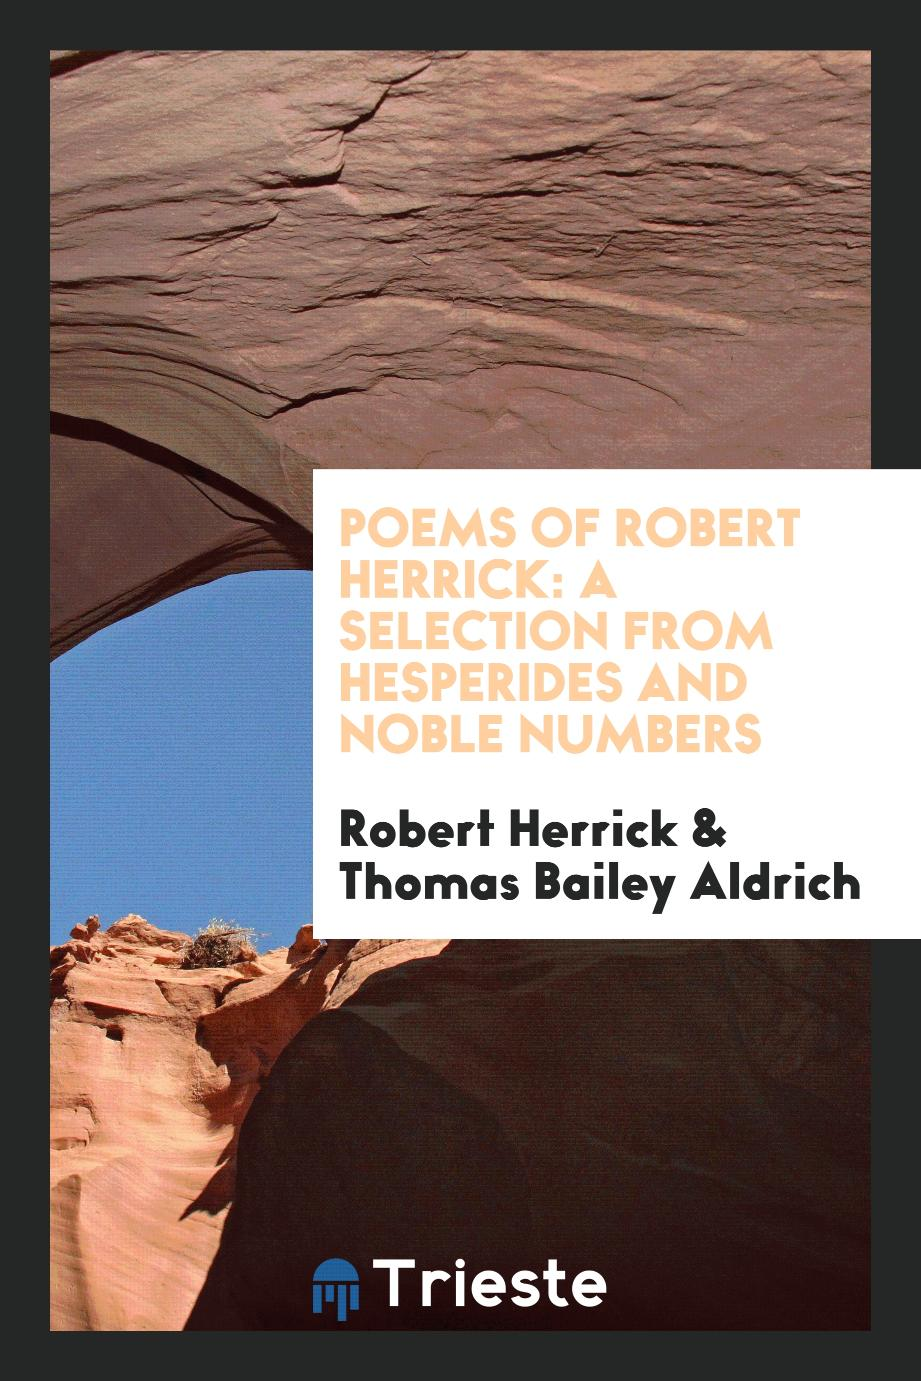 Poems of Robert Herrick: a selection from Hesperides and Noble numbers